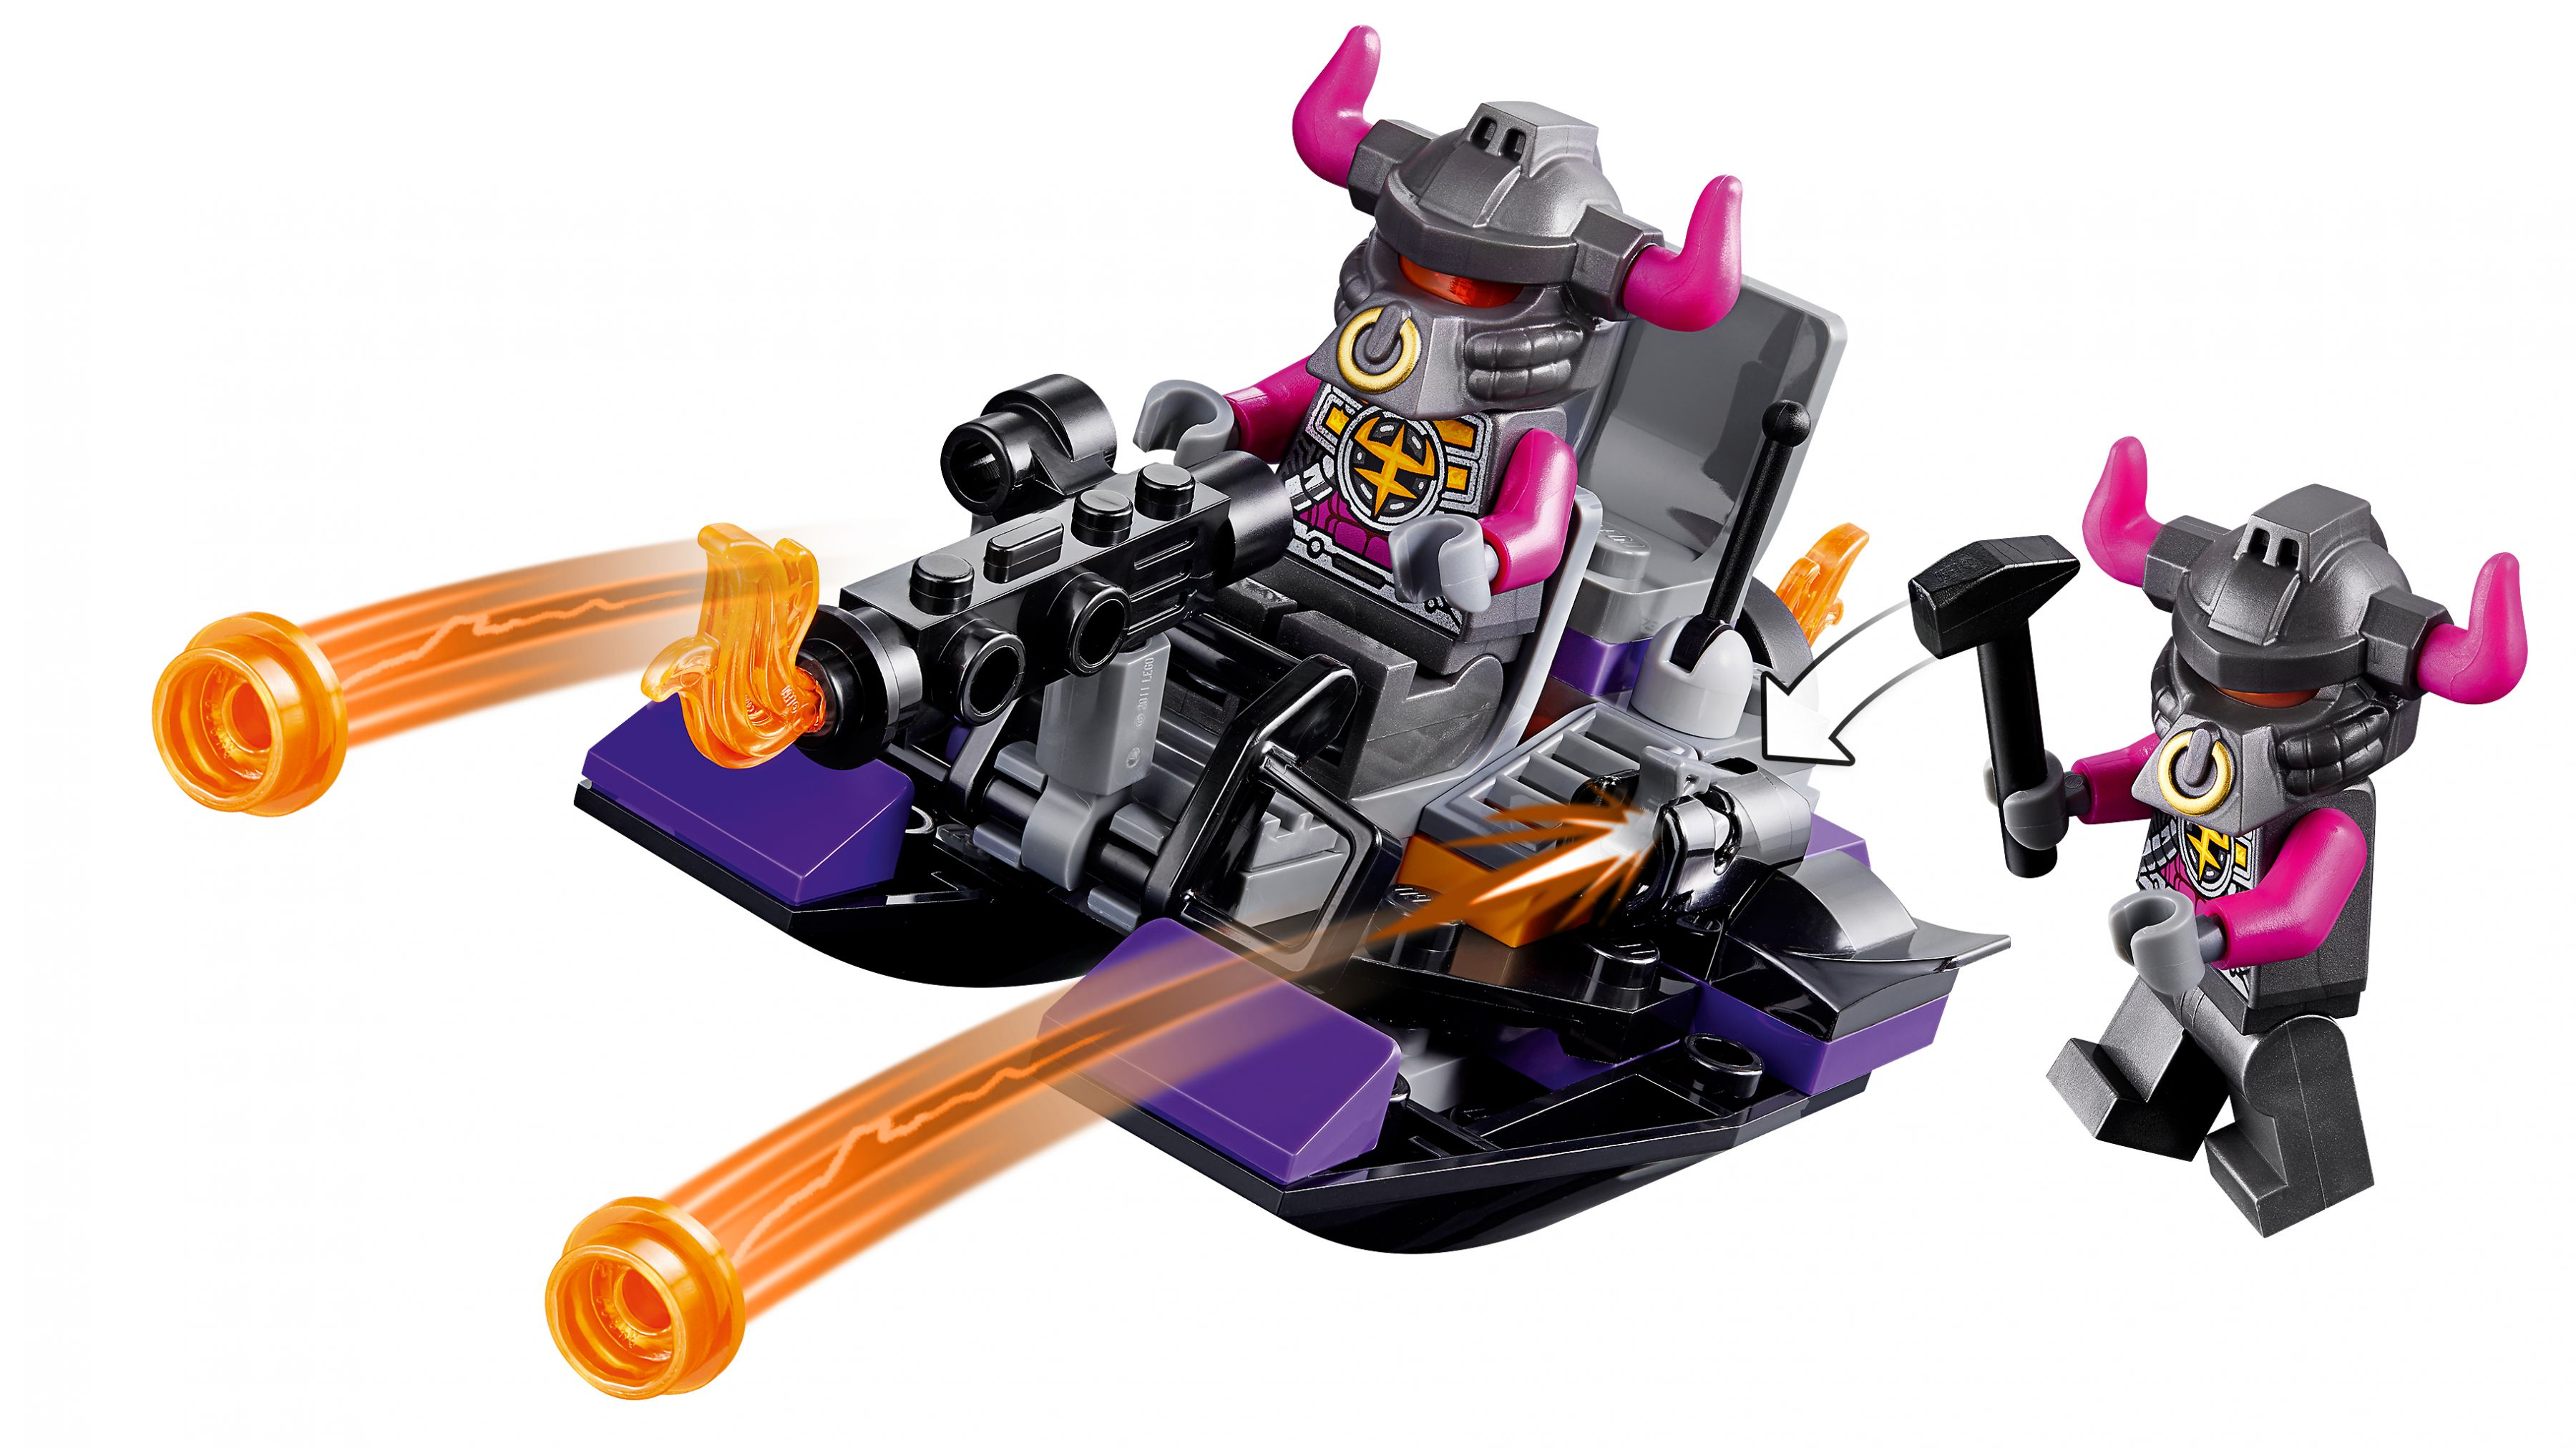 LEGO Monkie Kid 80013 Monkie Kids geheime Teambasis LEGO_80013_alt4.jpg